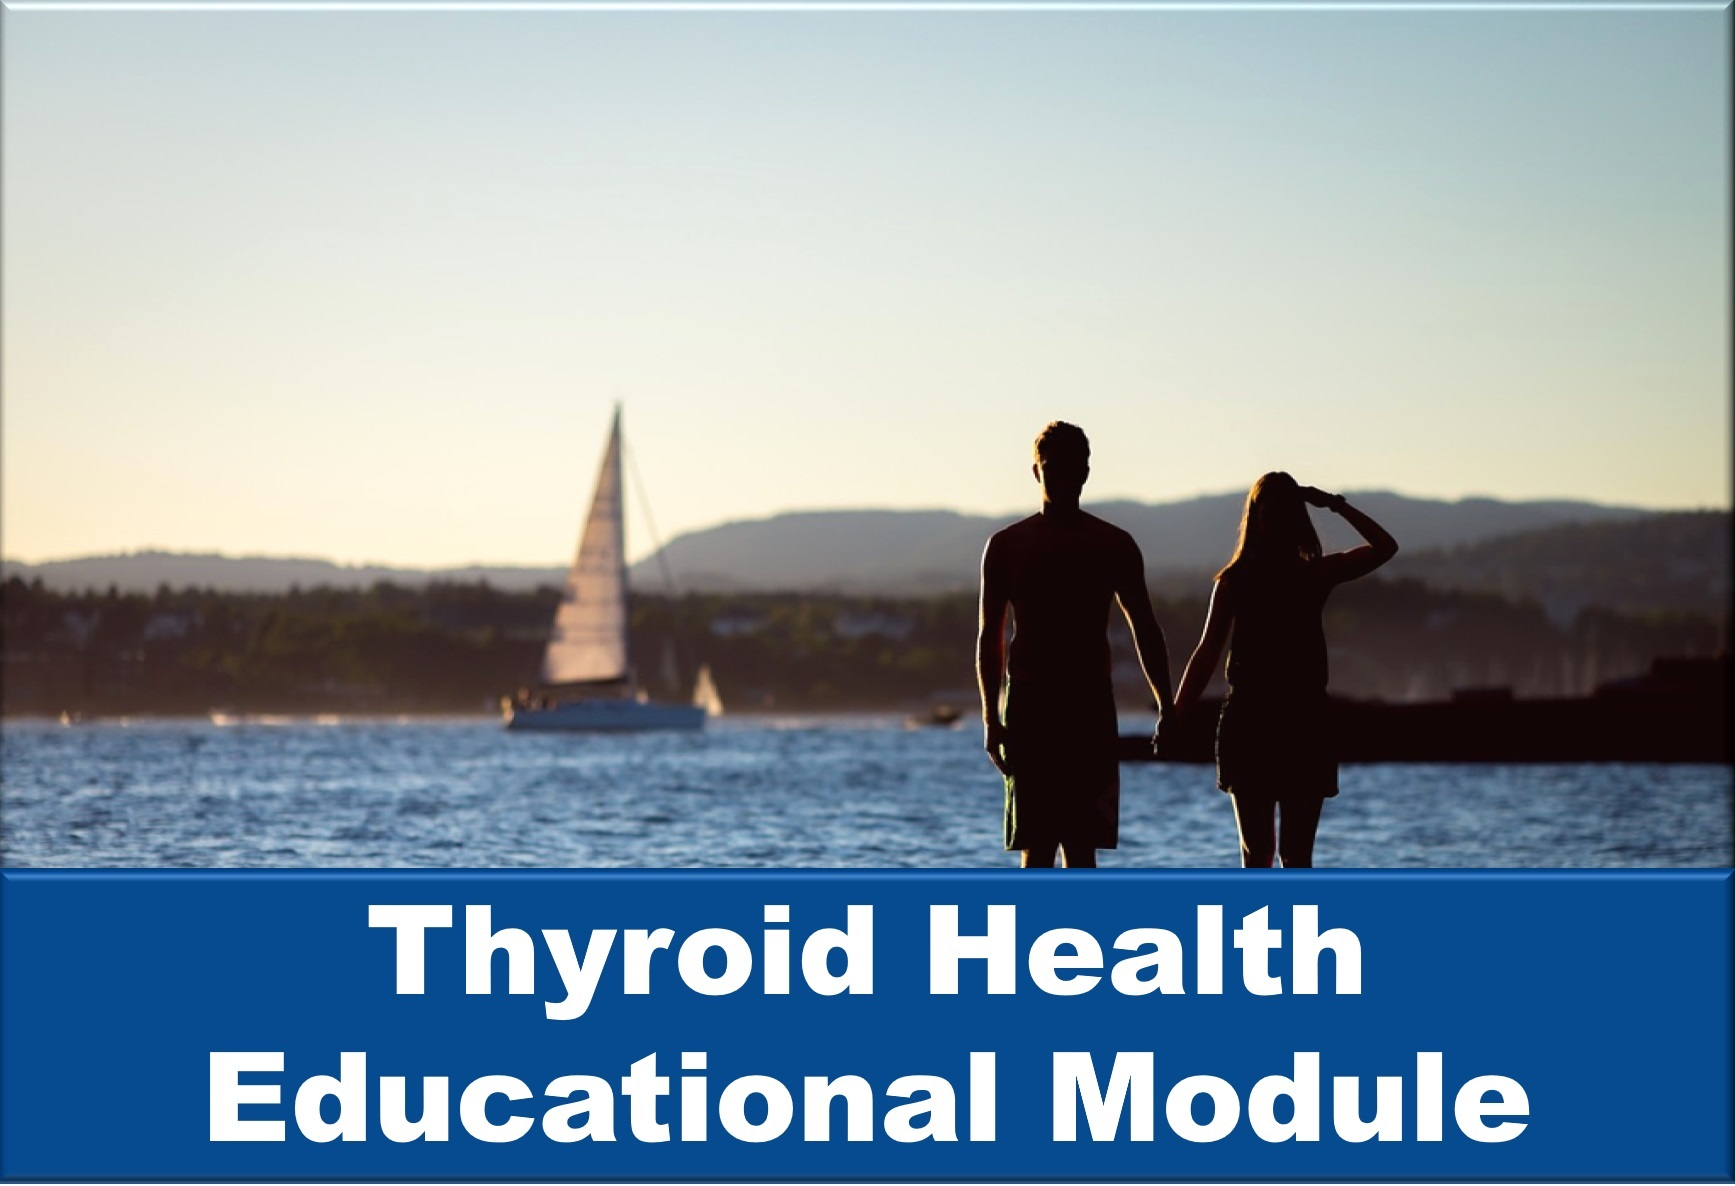 Thyroid Health Educational Module